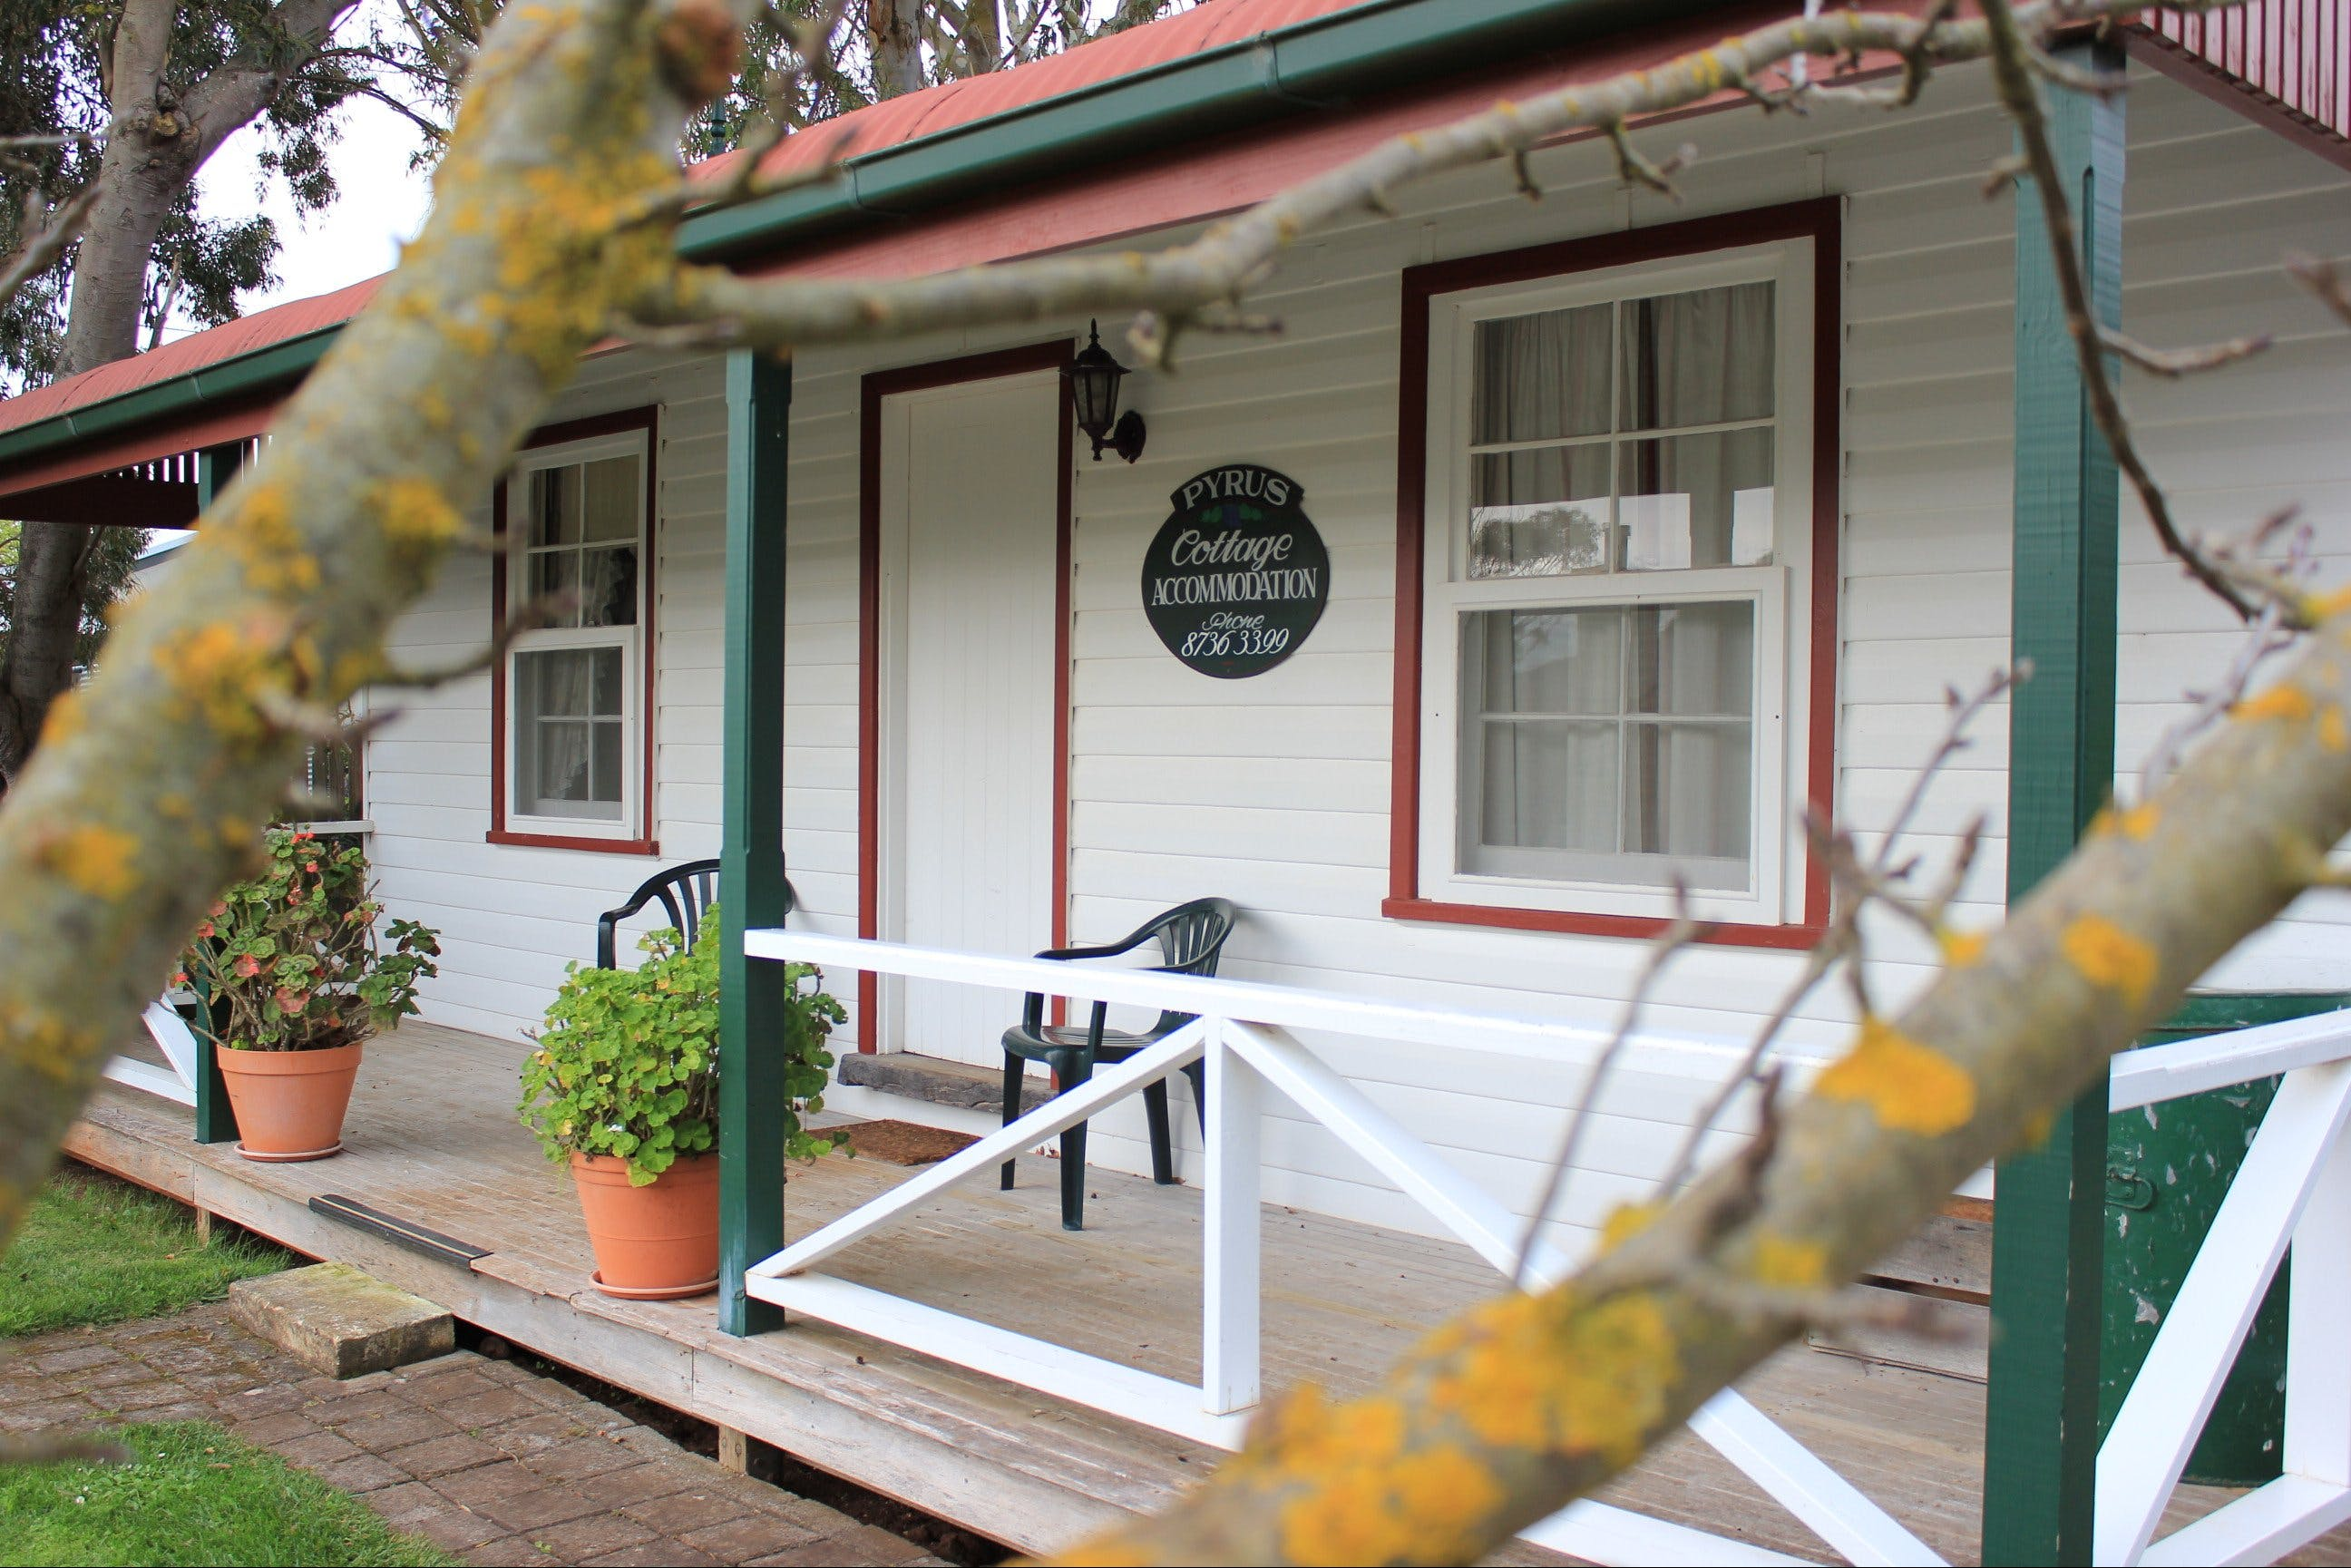 Coonawarra's Pyrus Cottage - Accommodation Broken Hill